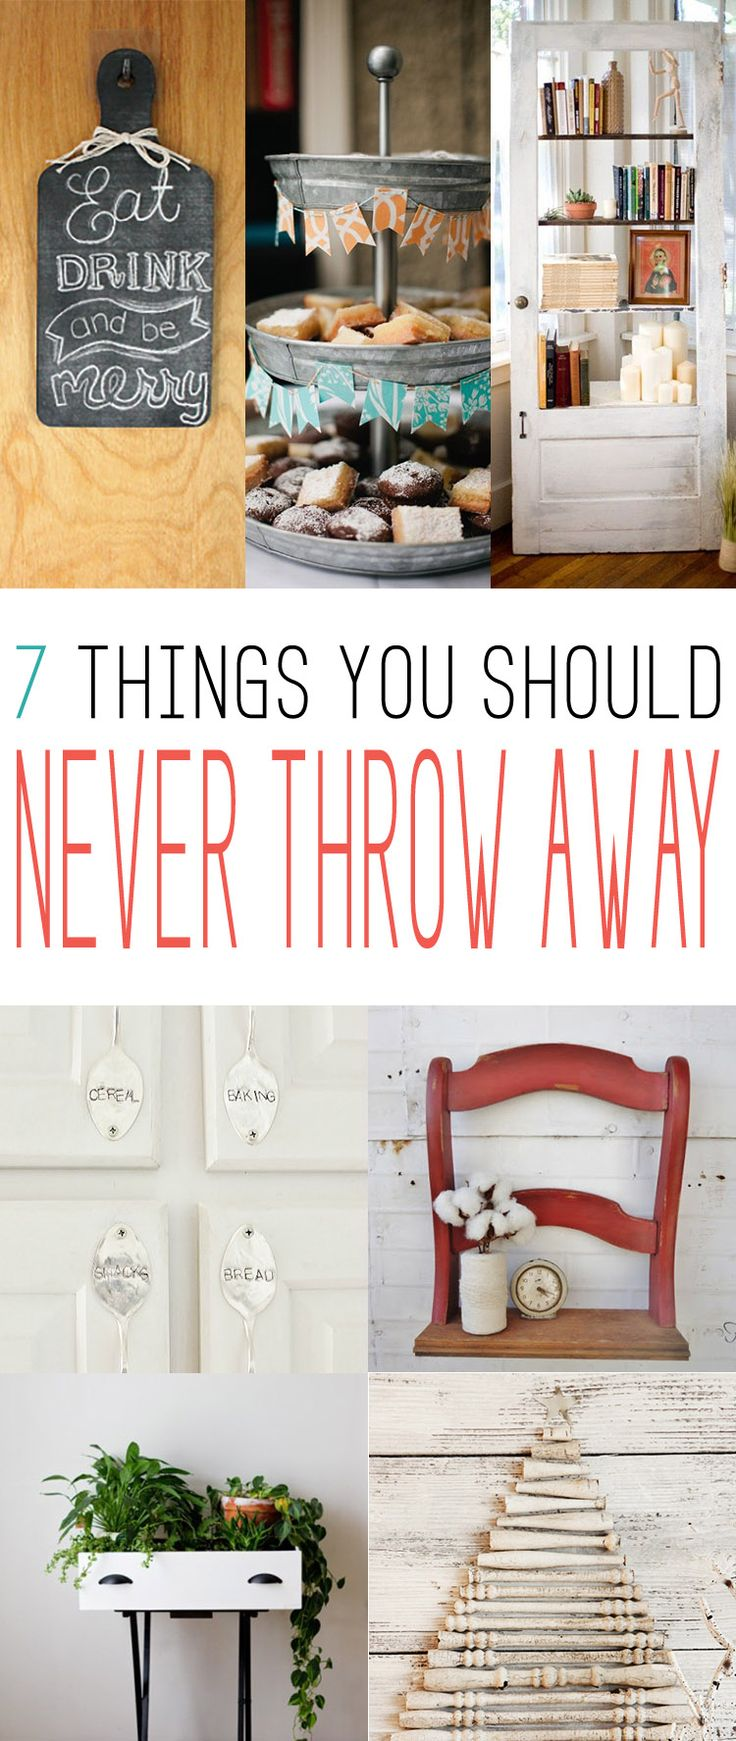 7 Things You Should NEVER Throw Away